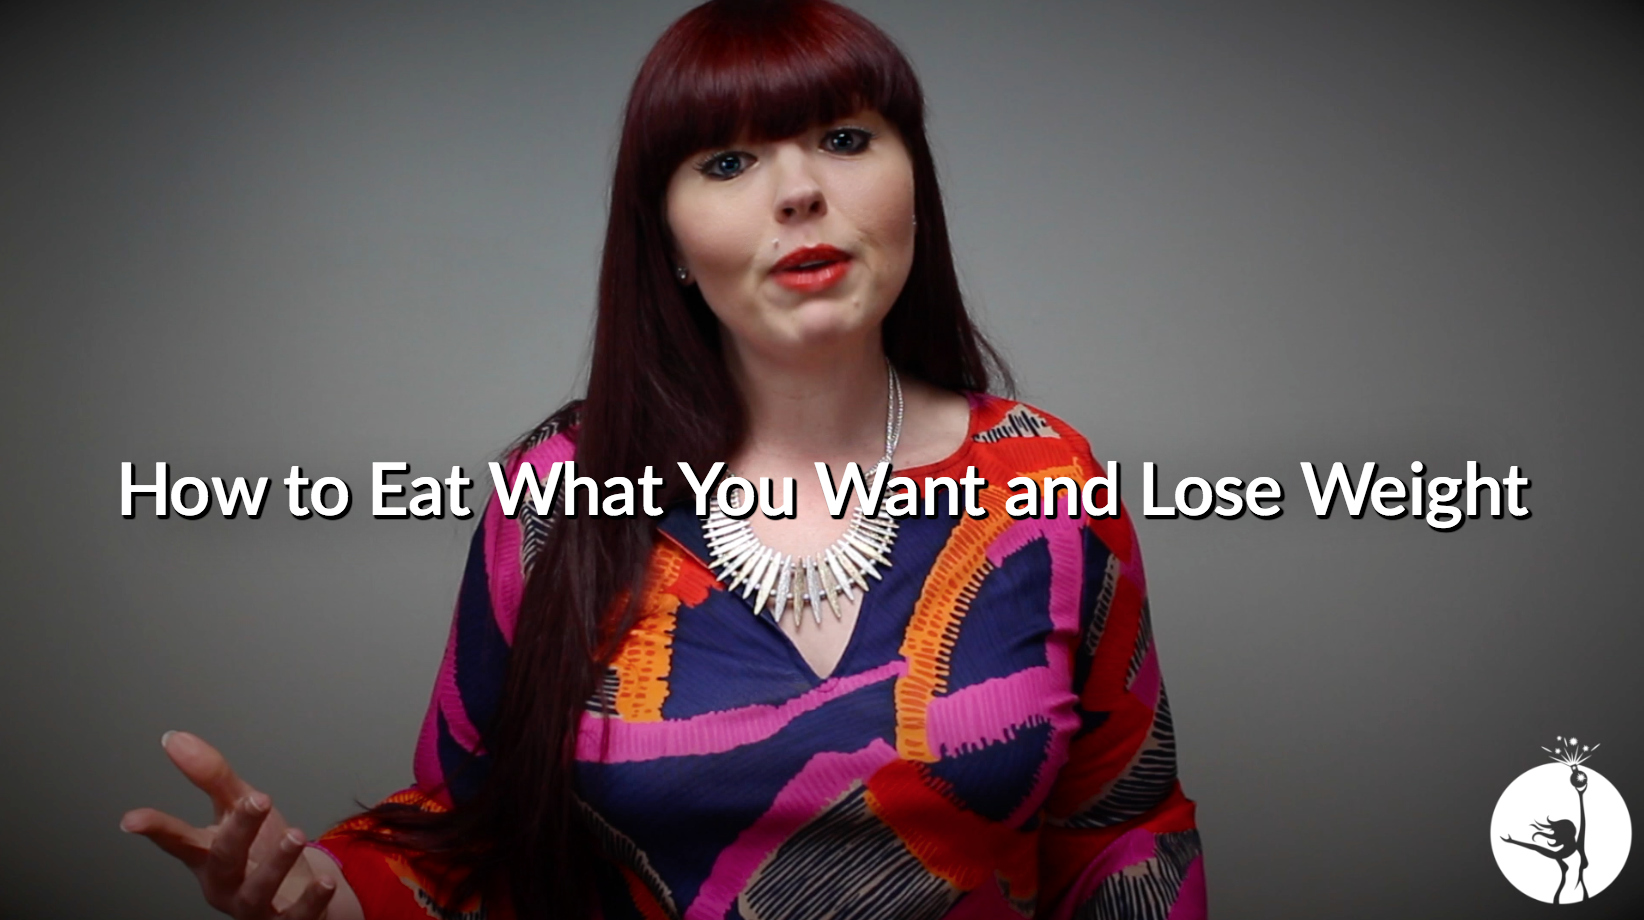 how to eat what you want and lose weight